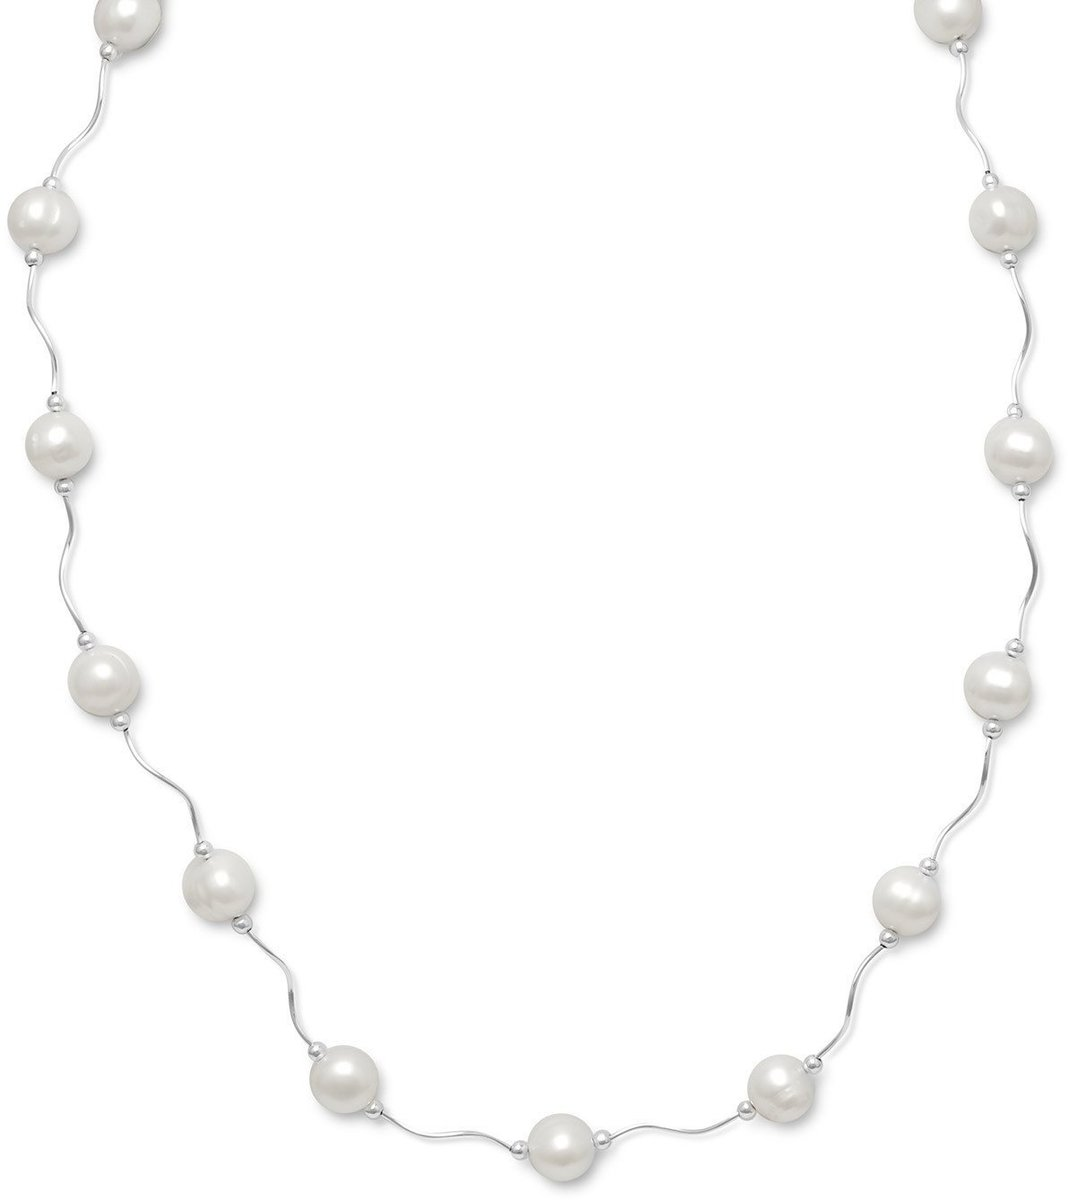 "17""+2""Extension Wave Design Tube Necklace with Cultured Freshwater Pearls 925 Sterling Silver"